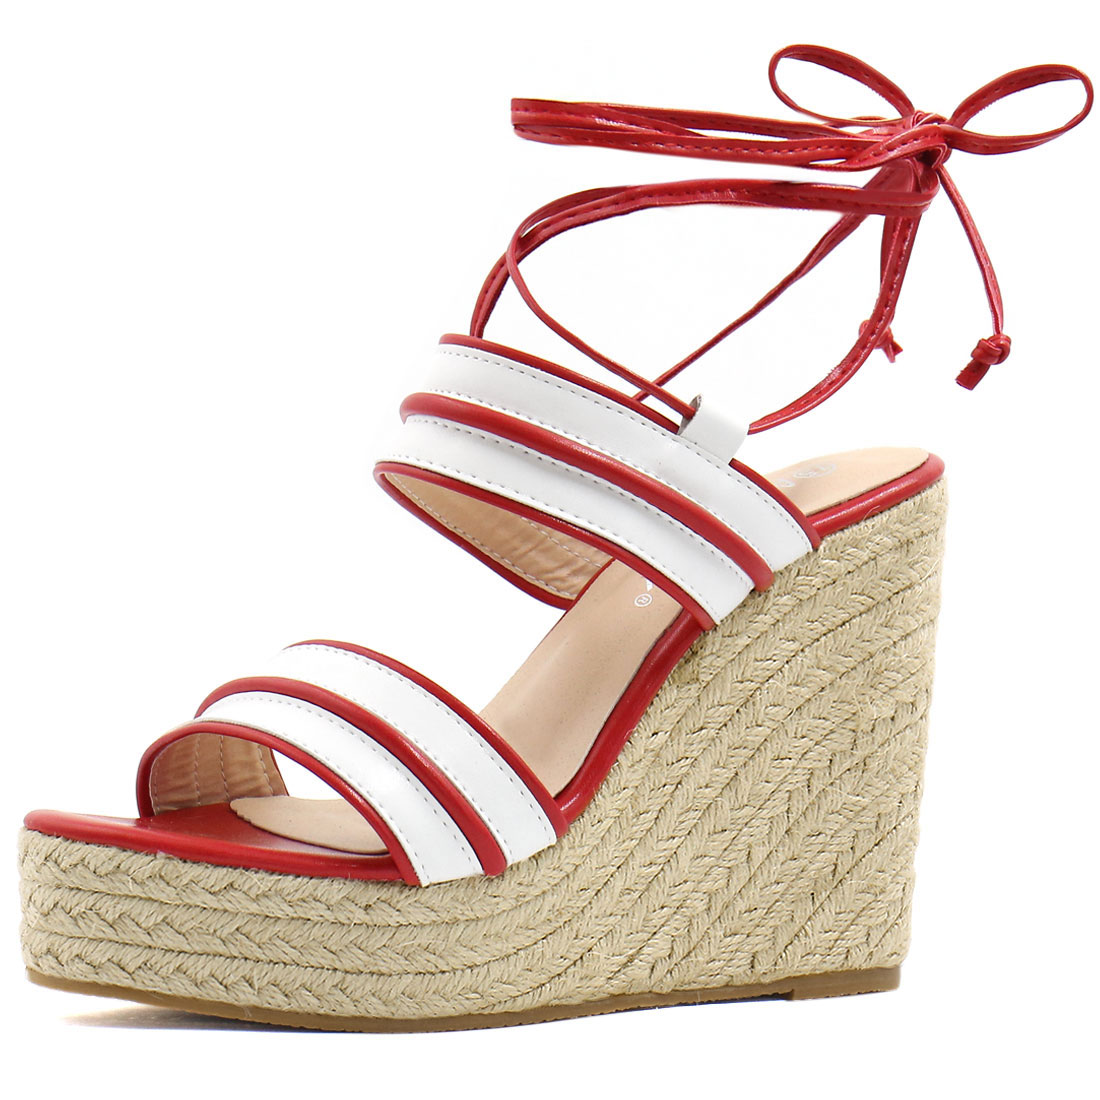 Women Striped Ankle Tie Espadrille Wedge Sandals White Red US 7.5